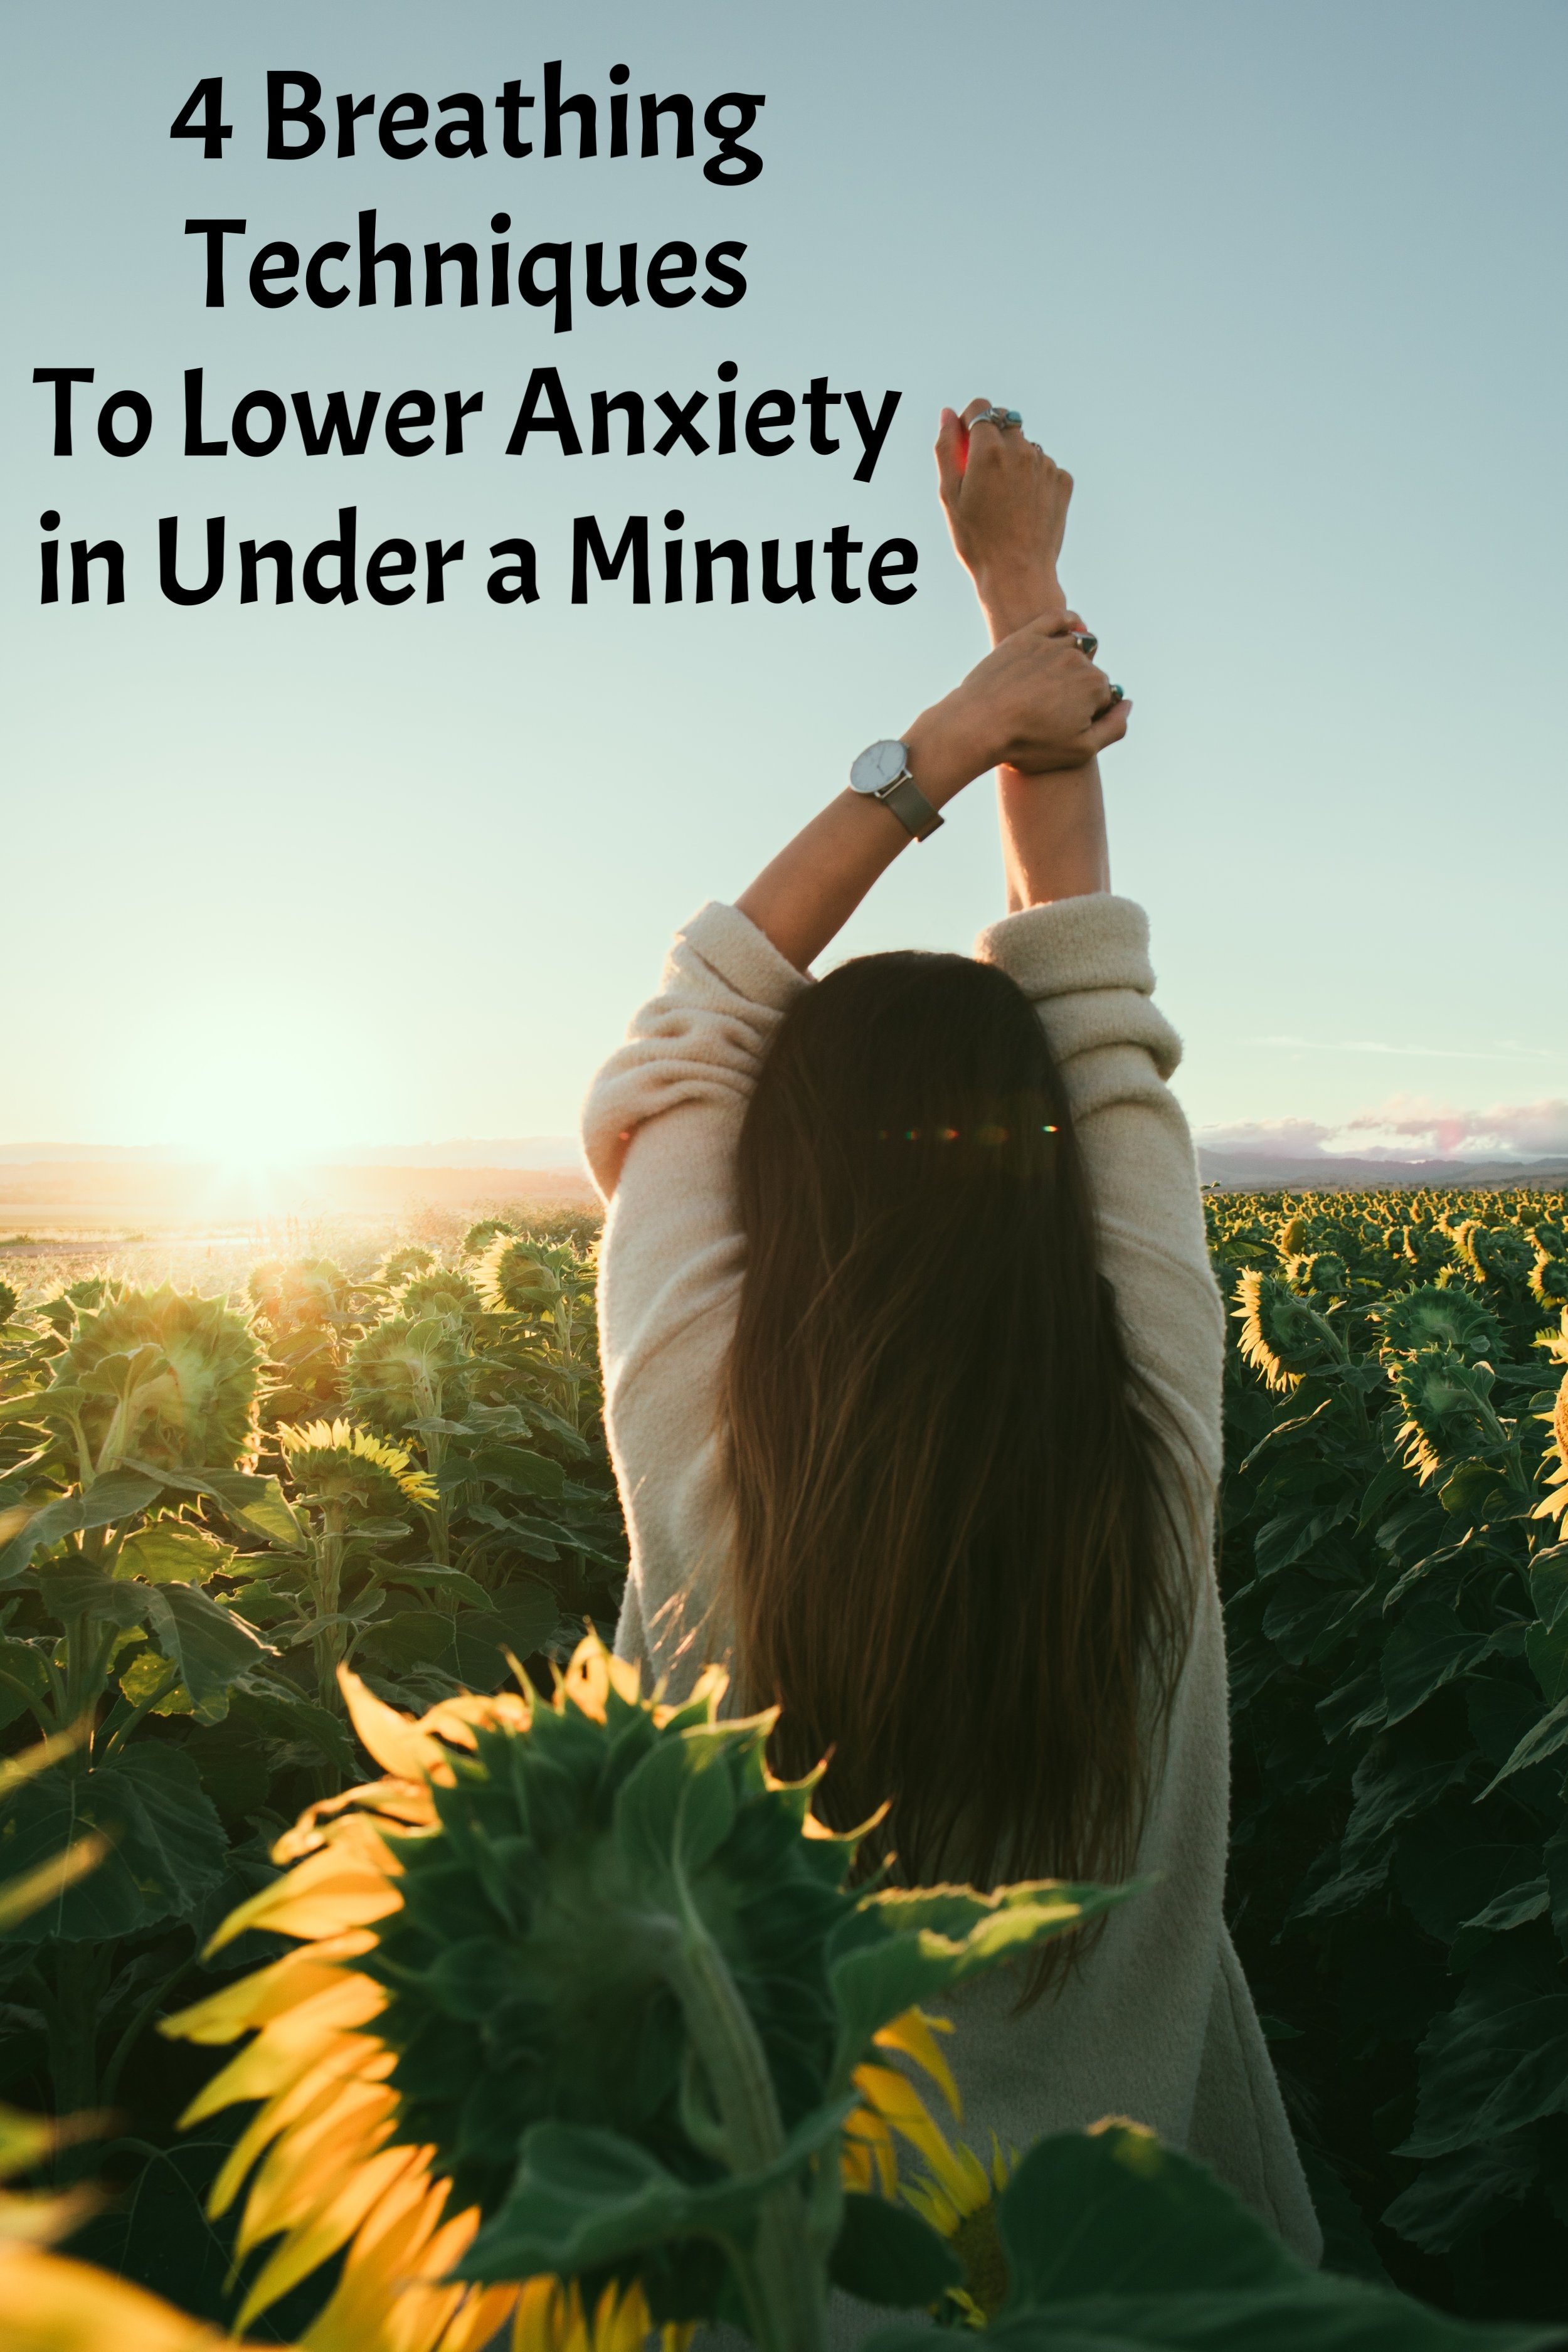 4 breathing techniques to lower anxiety in under a minute